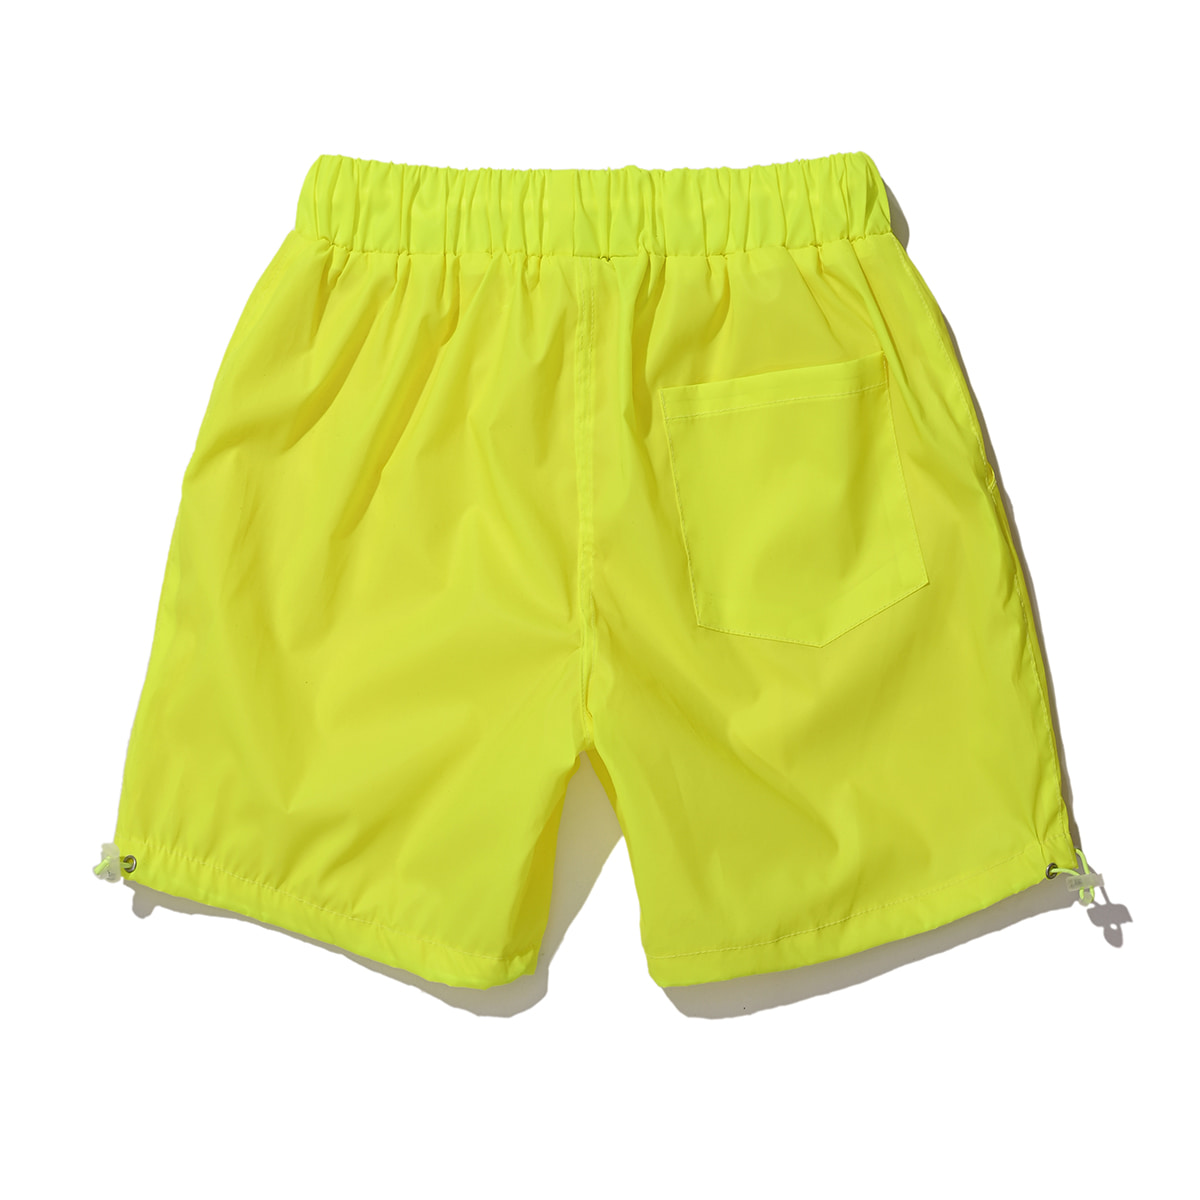 3M Reflective String Shorts (neon)